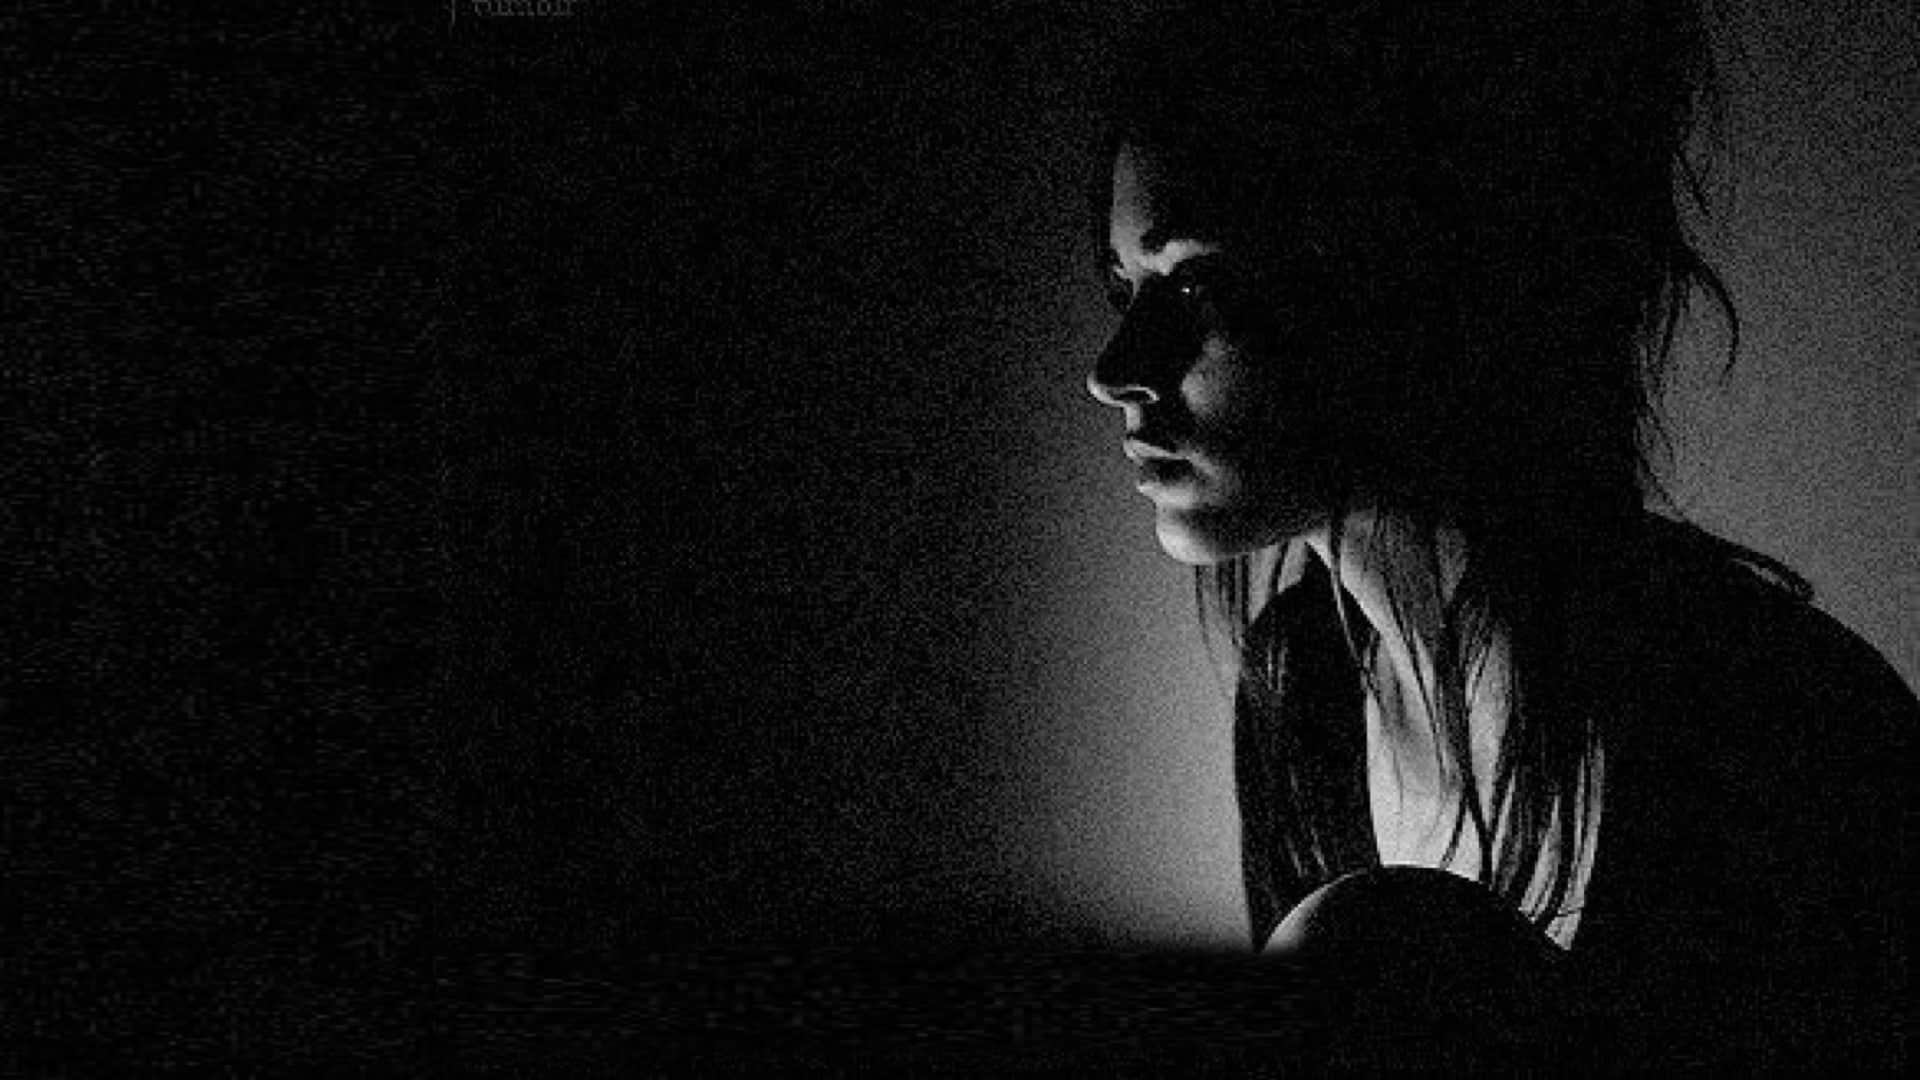 A woman suffering from depression sitting alone in the dark.